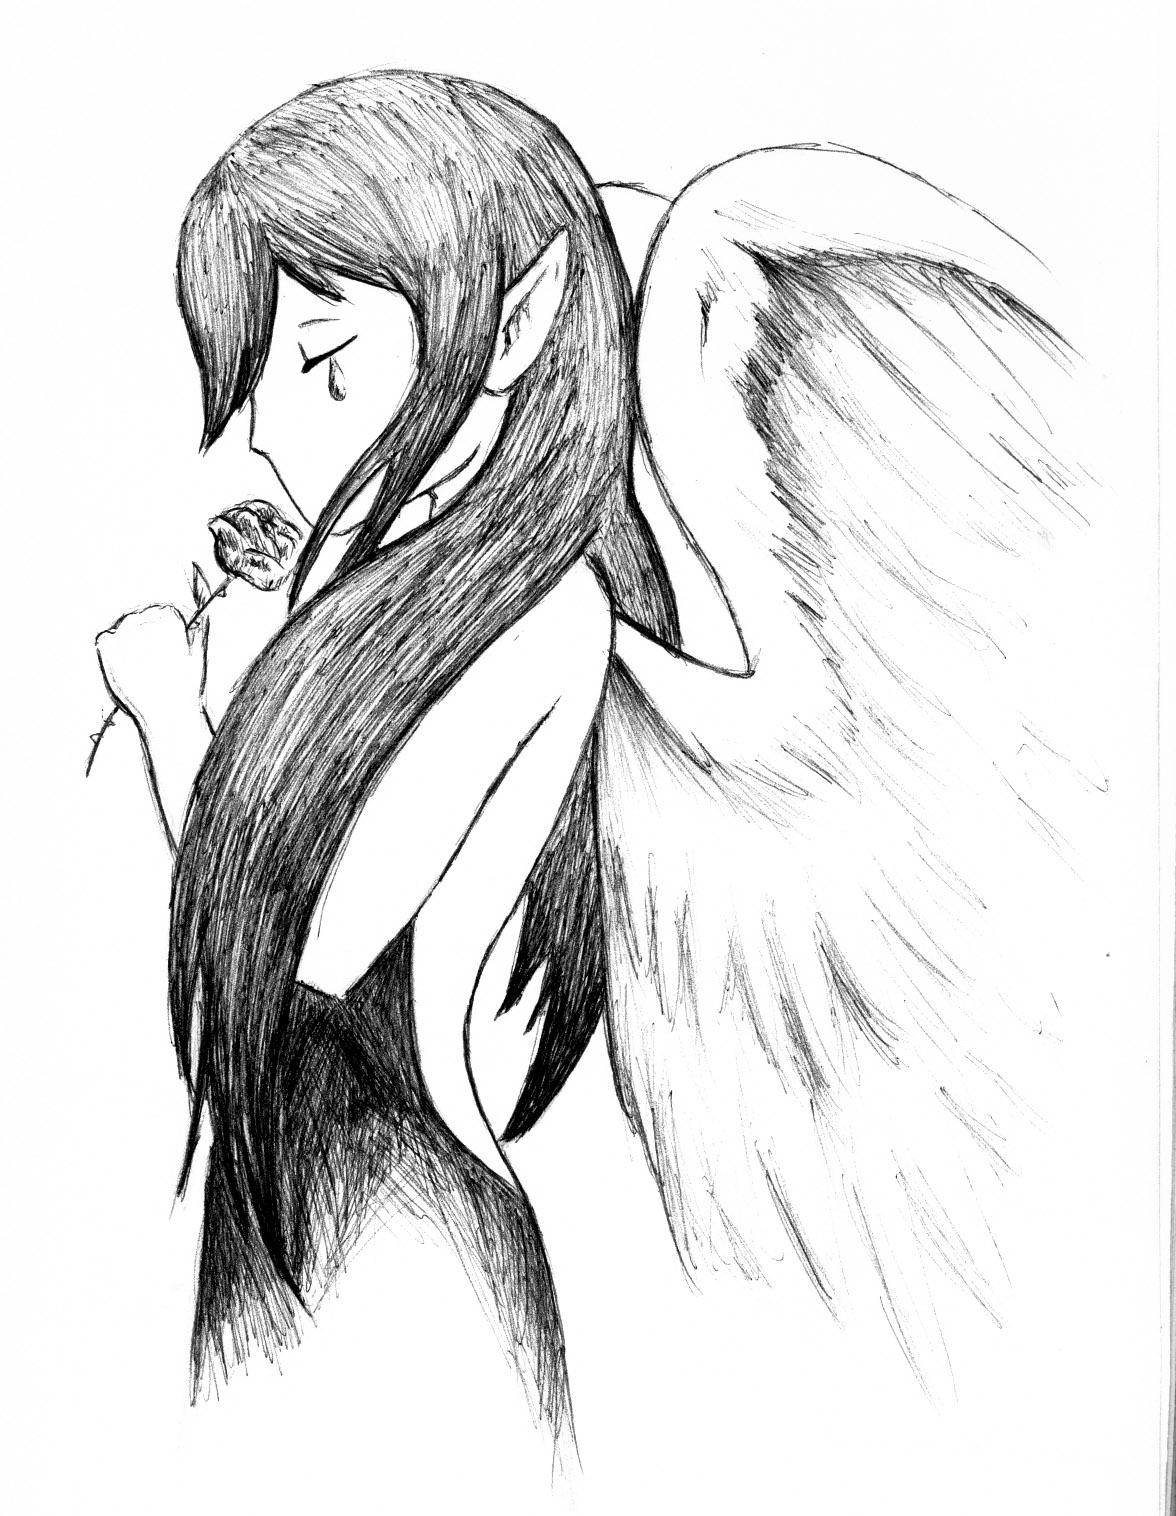 Sad Angel by yomalyn on DeviantArt